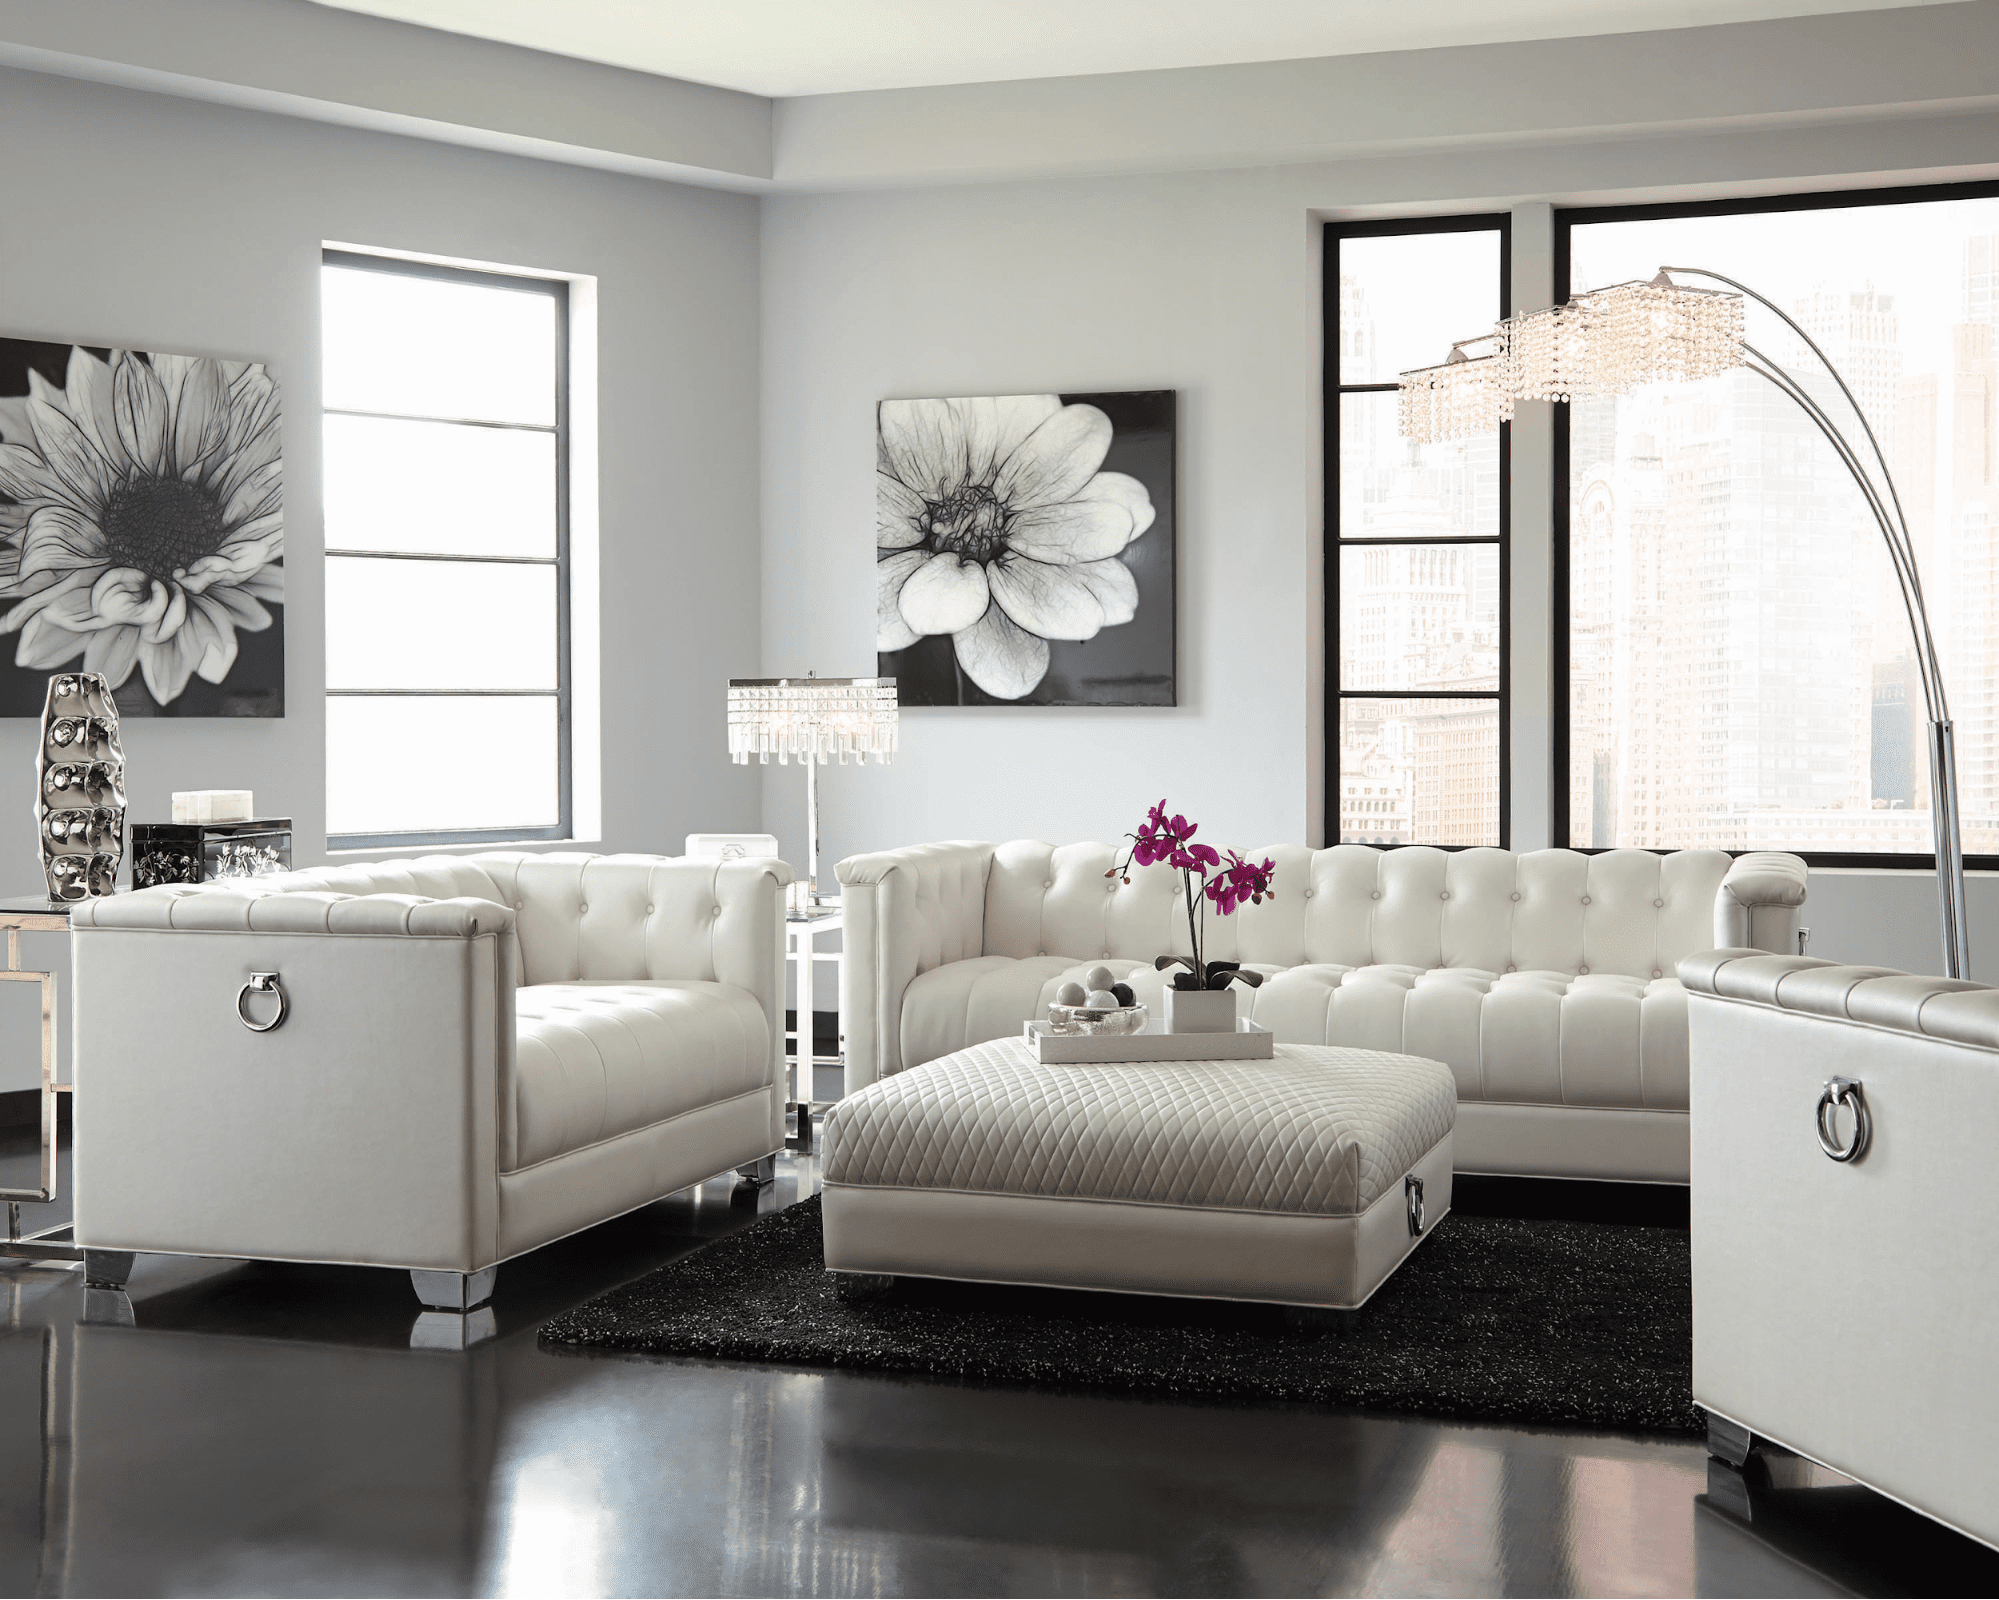 contemporary living room: Chaviano Tufted Upholstered Sofa Pearl White